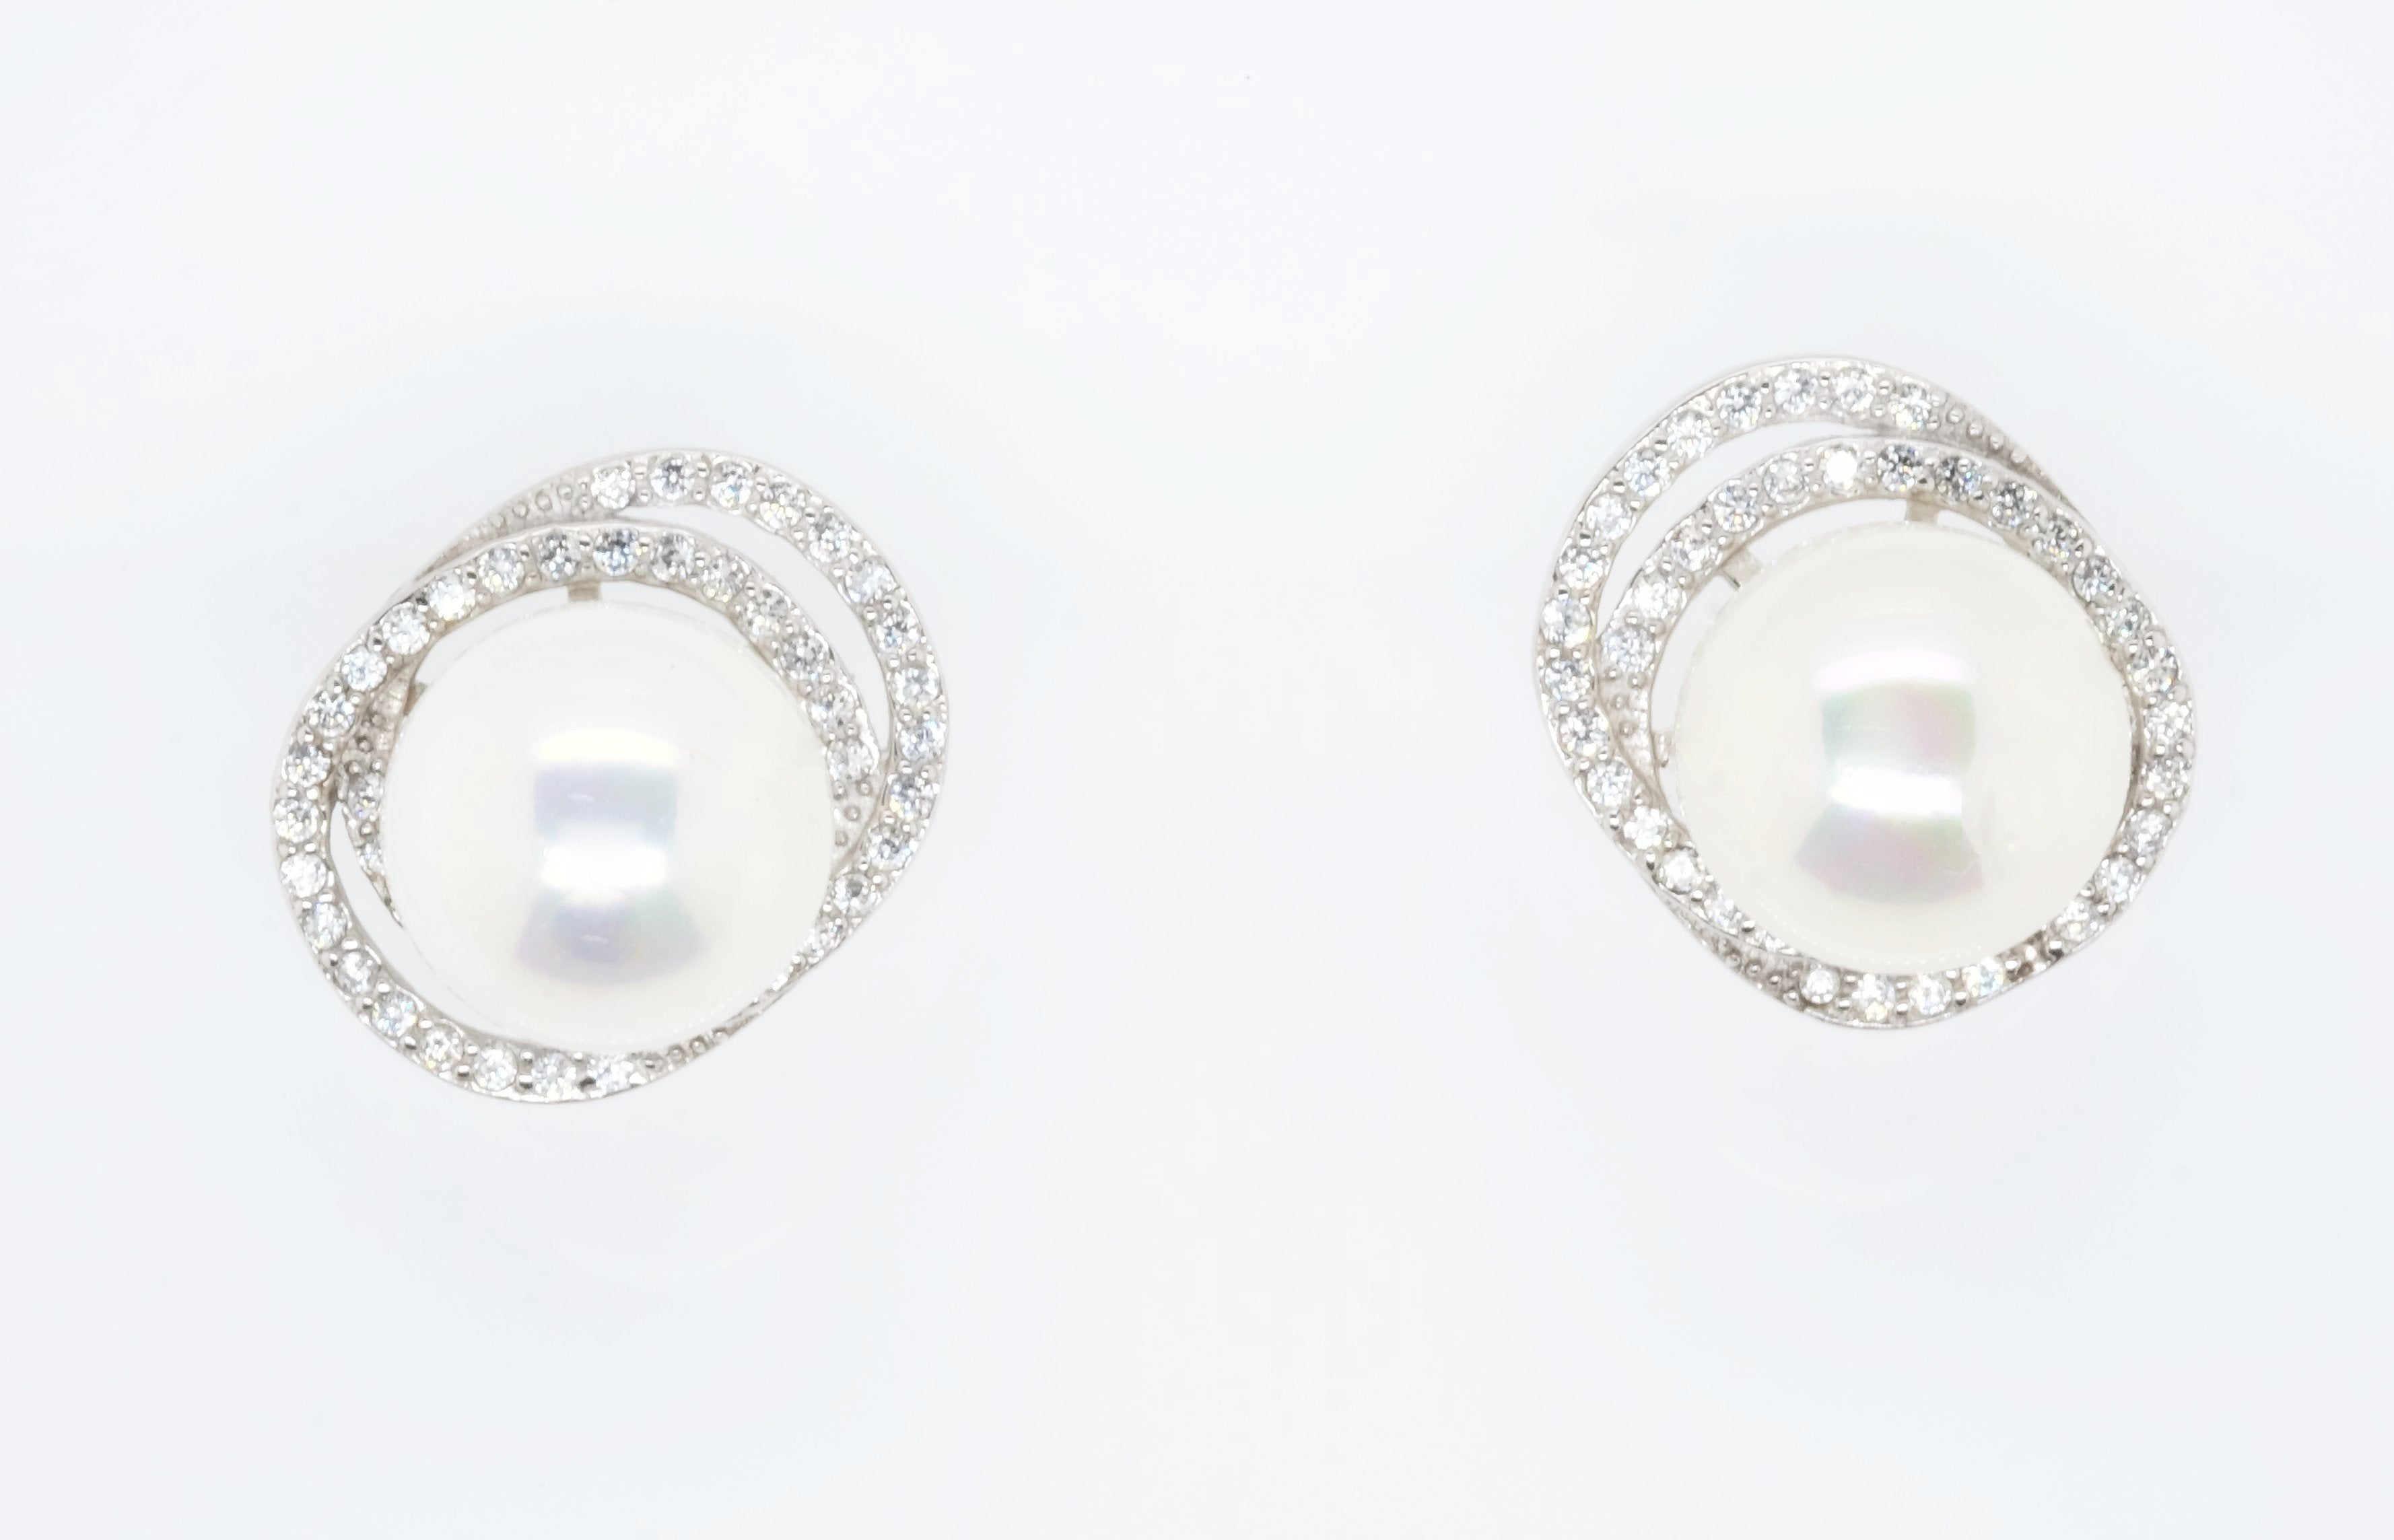 Goddess Aphrodite White Pearl Orbit Stud Earrings